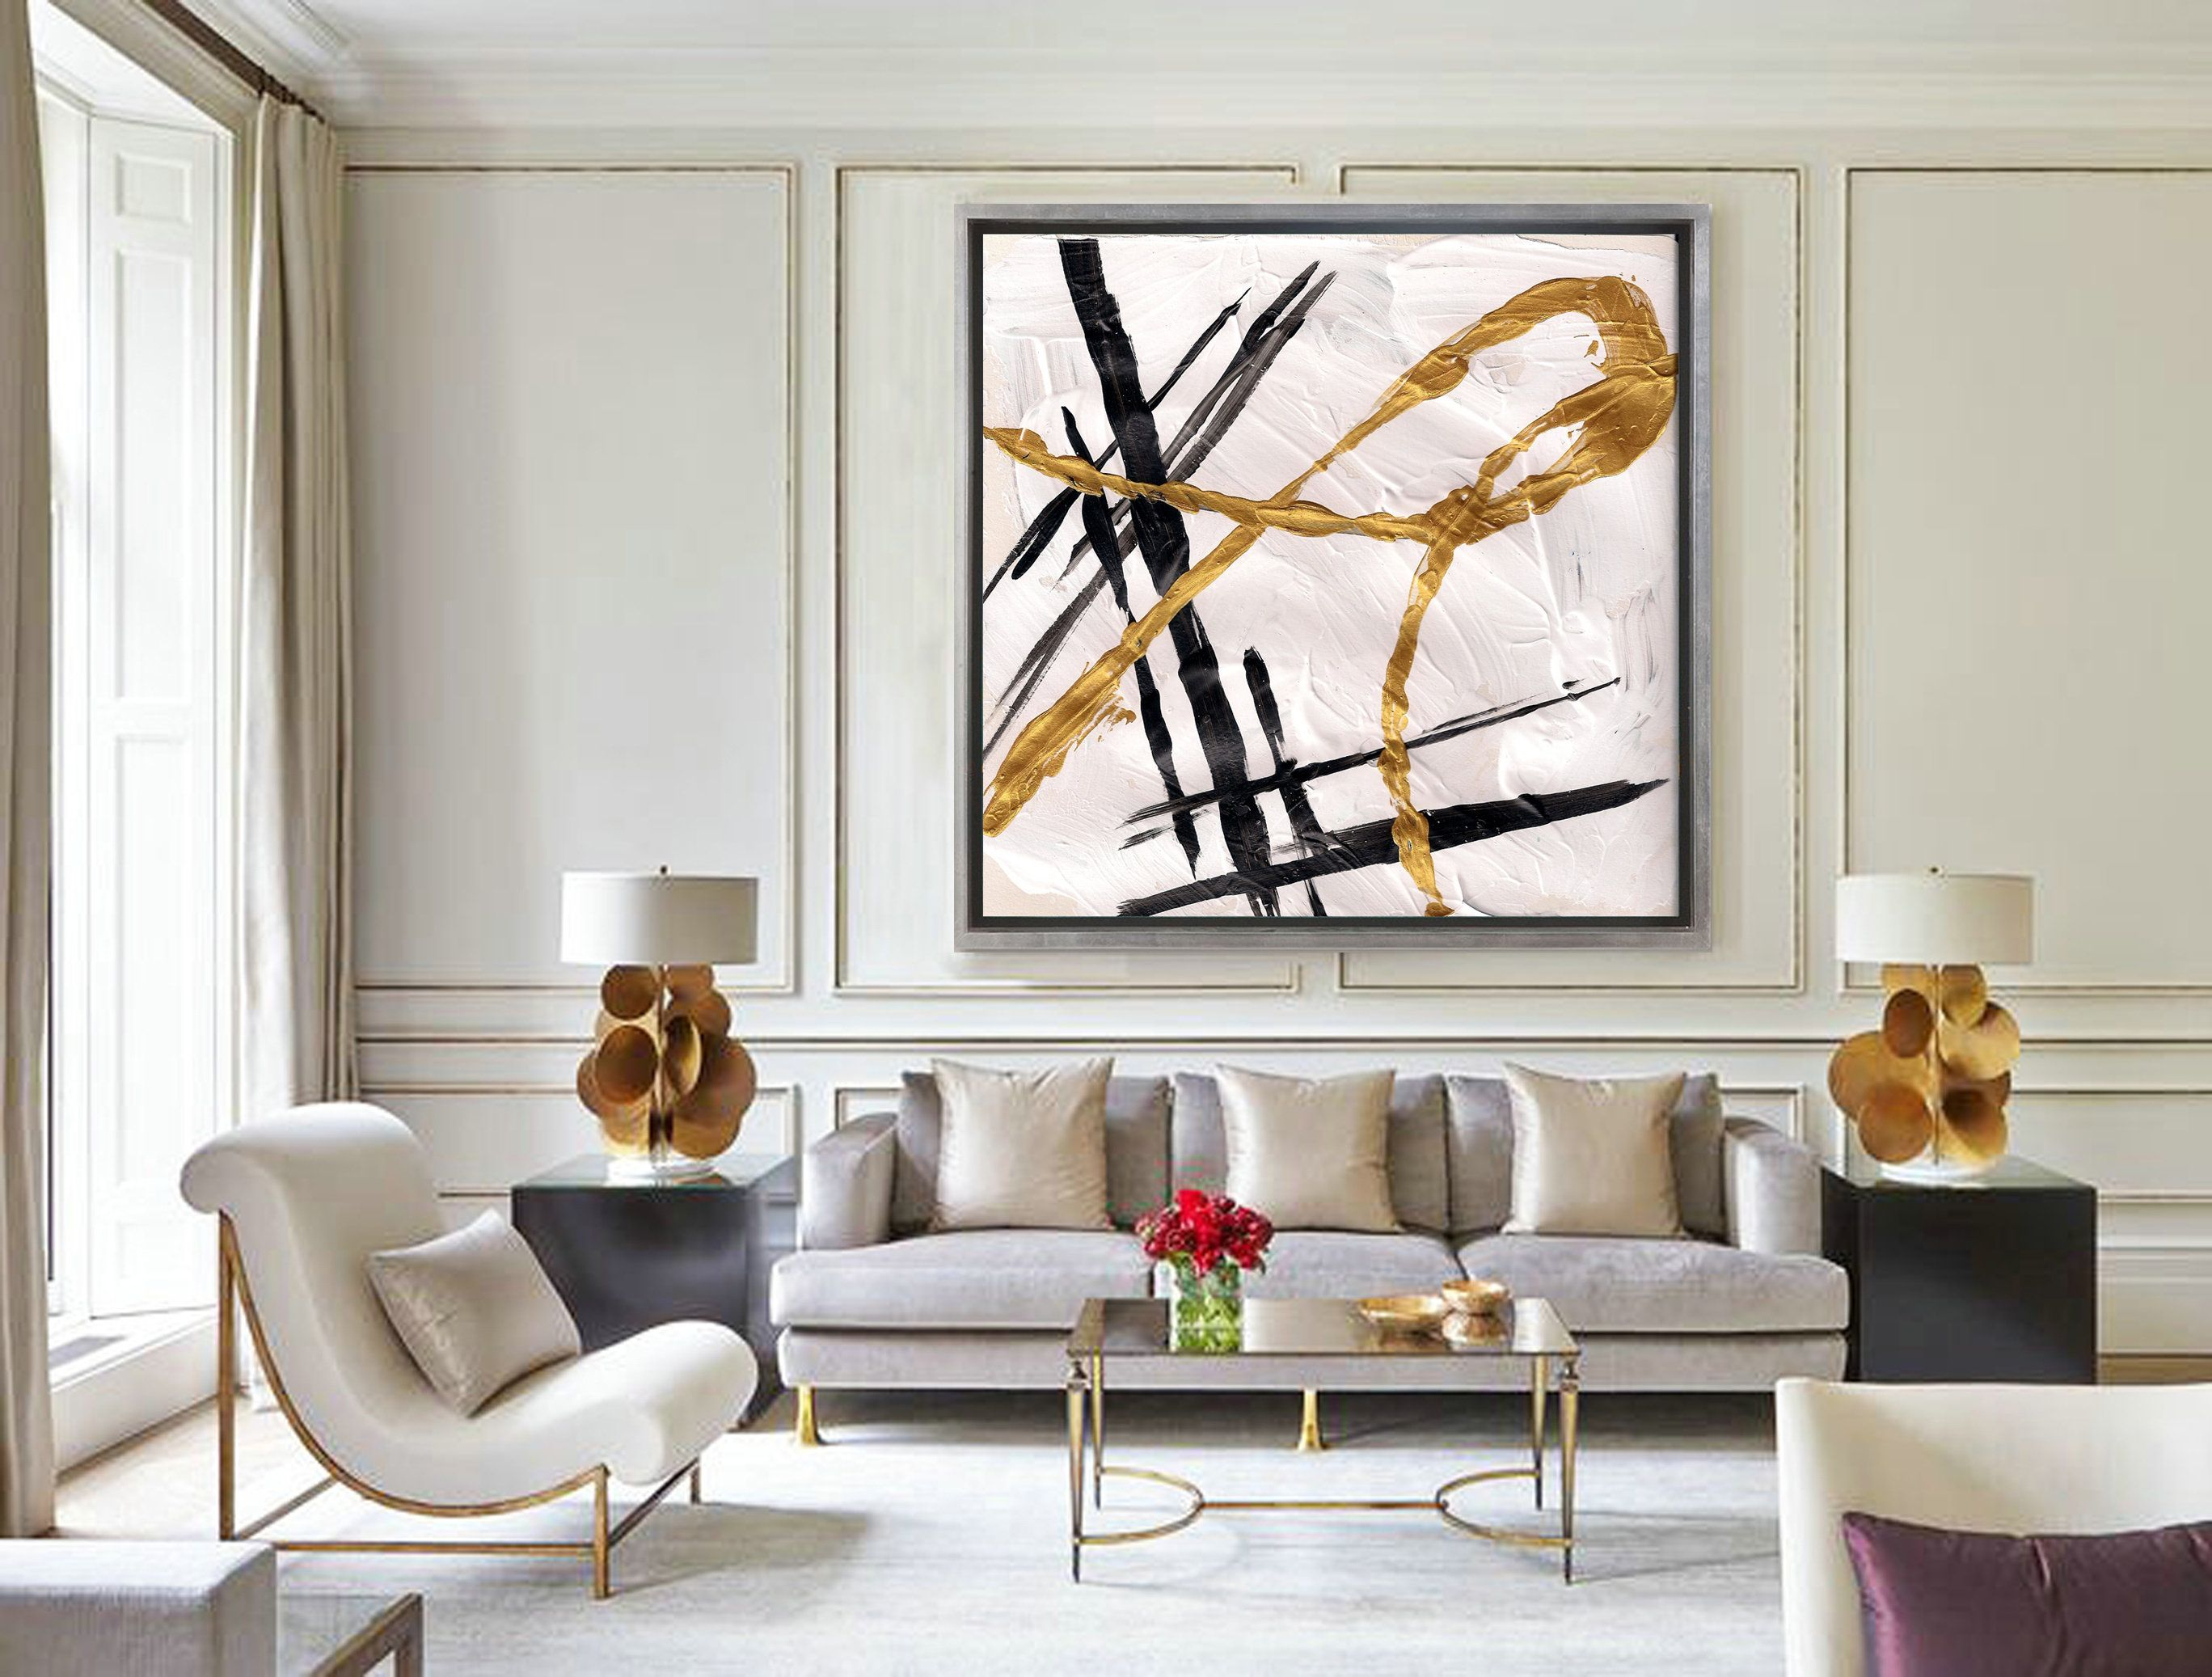 Oversize Minimalism Abstract Art Painting On Canvas Officeroom Art Black White Gold Home Living Room Decor Modern Elegant Living Room Decor Abstract Art Decor